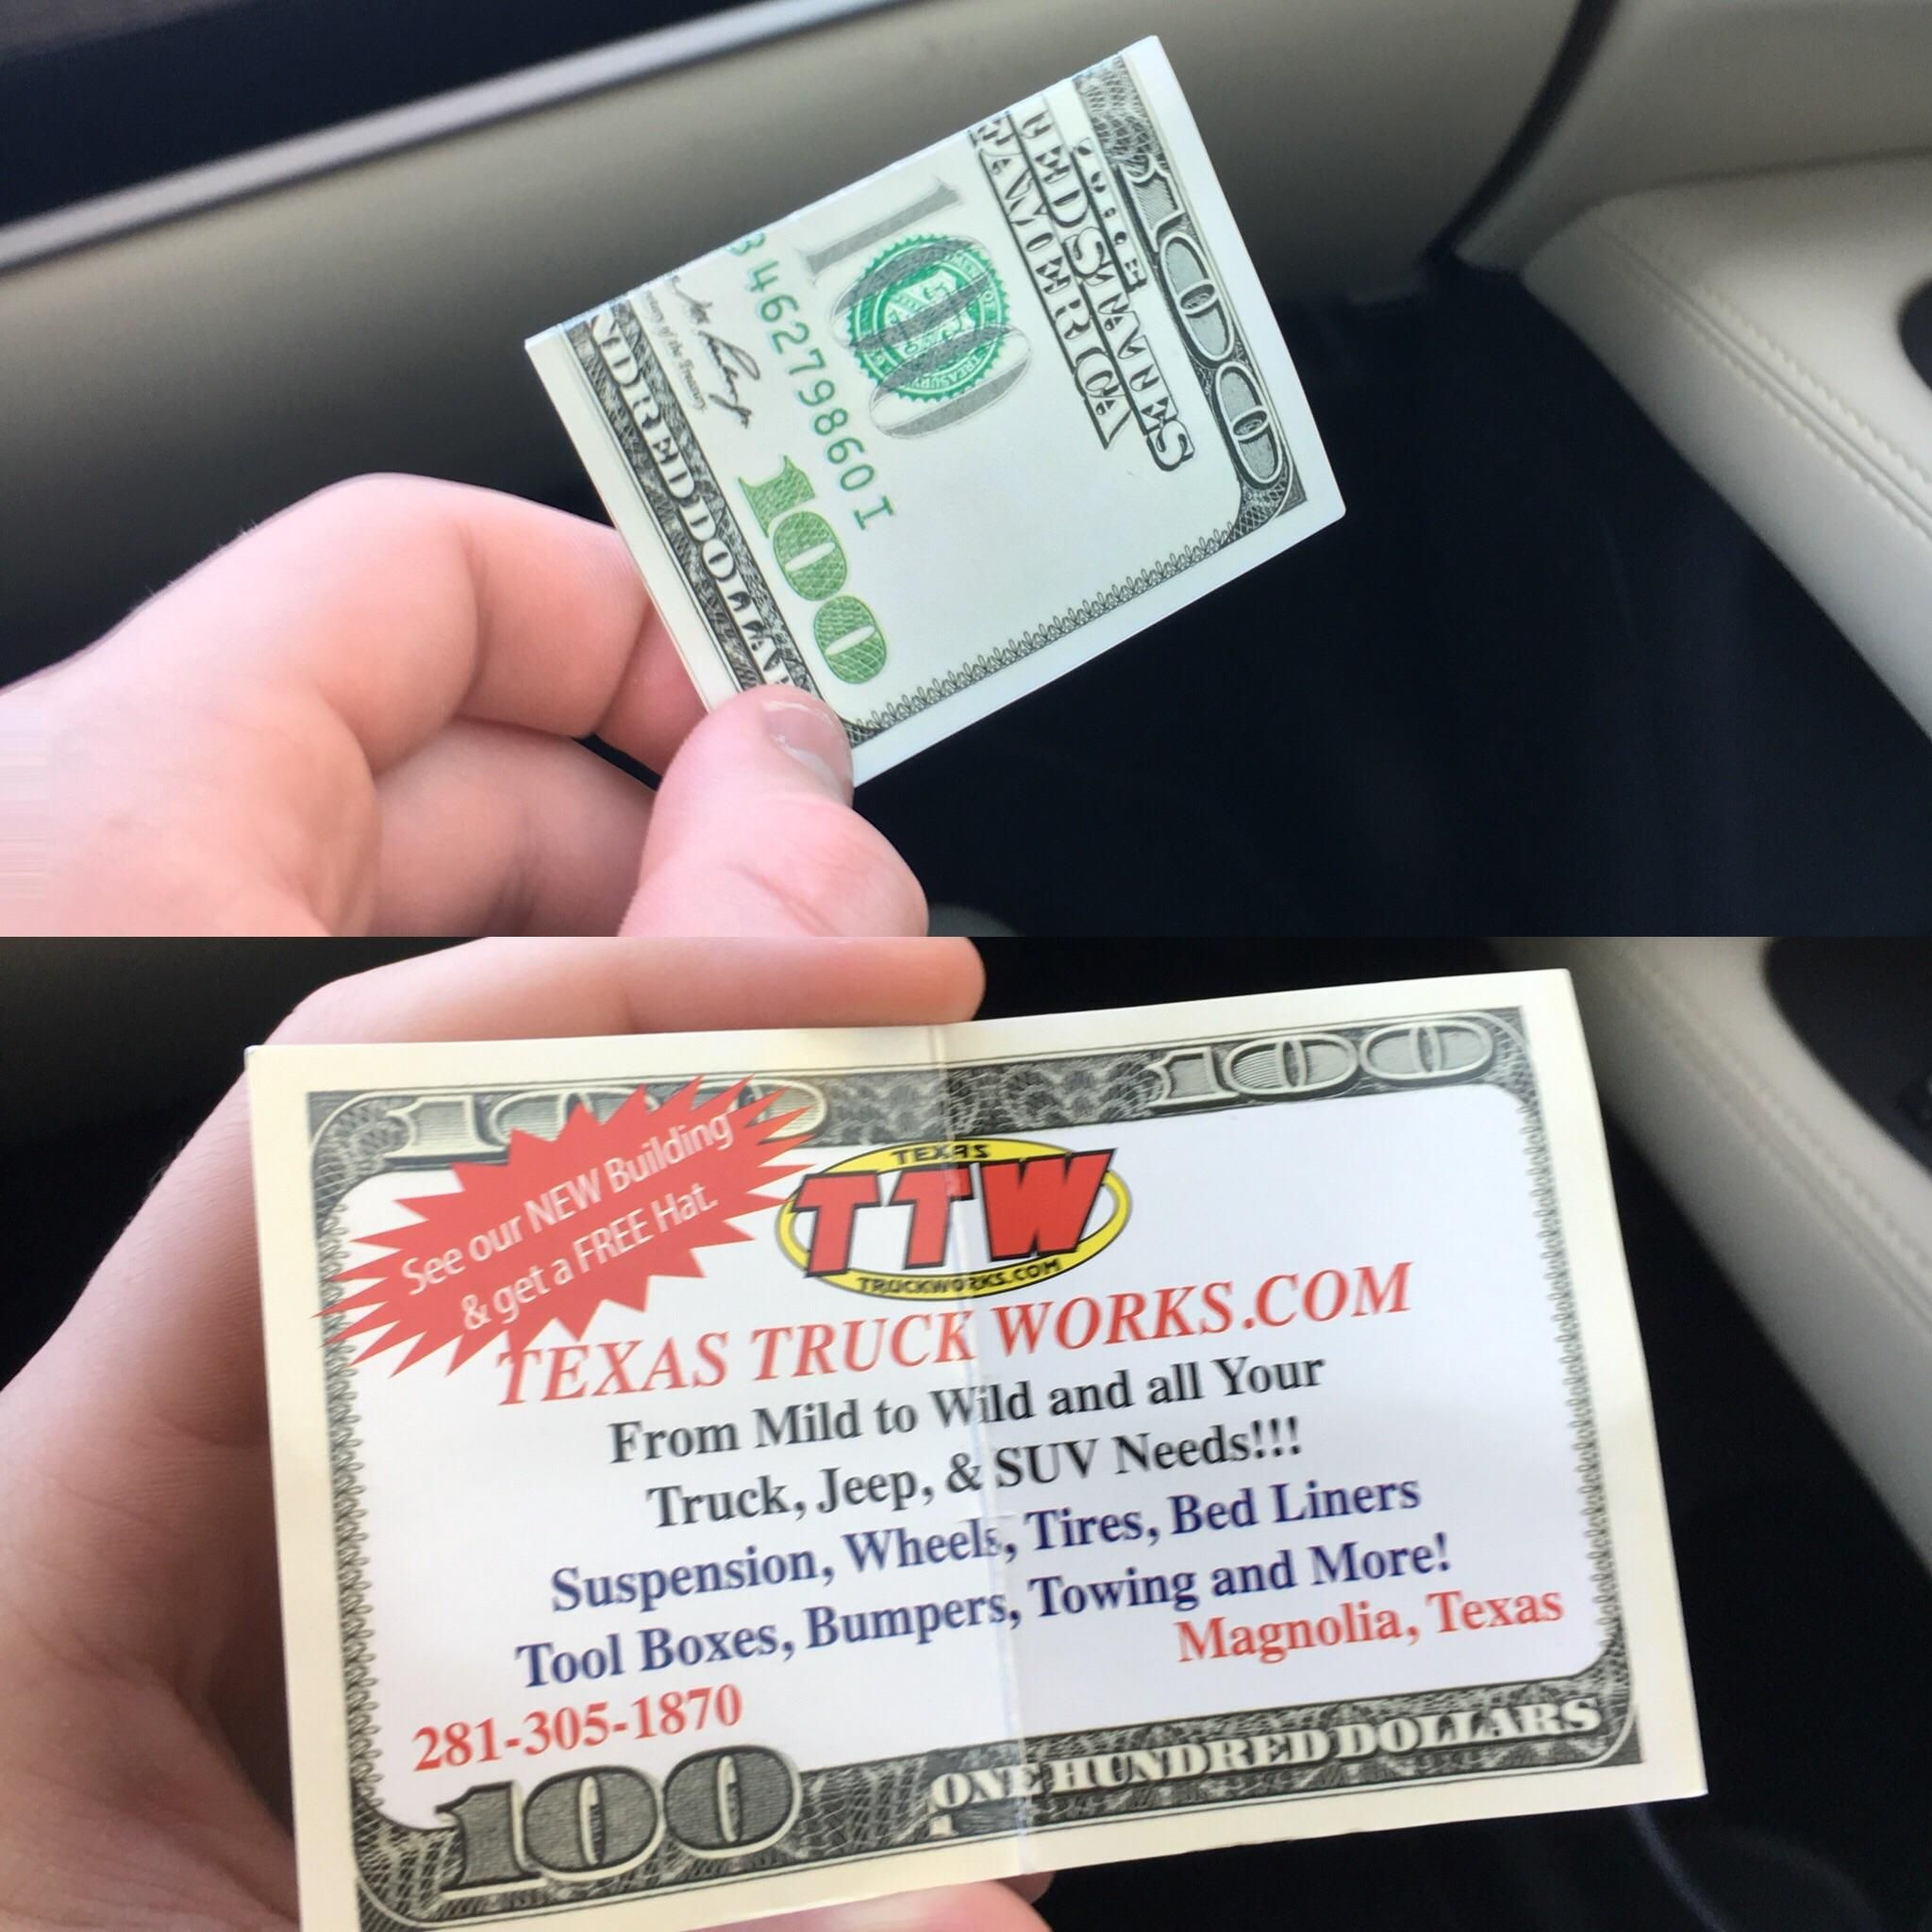 Interesting Business Card Makes You Think You Picked Up A 100 Bill